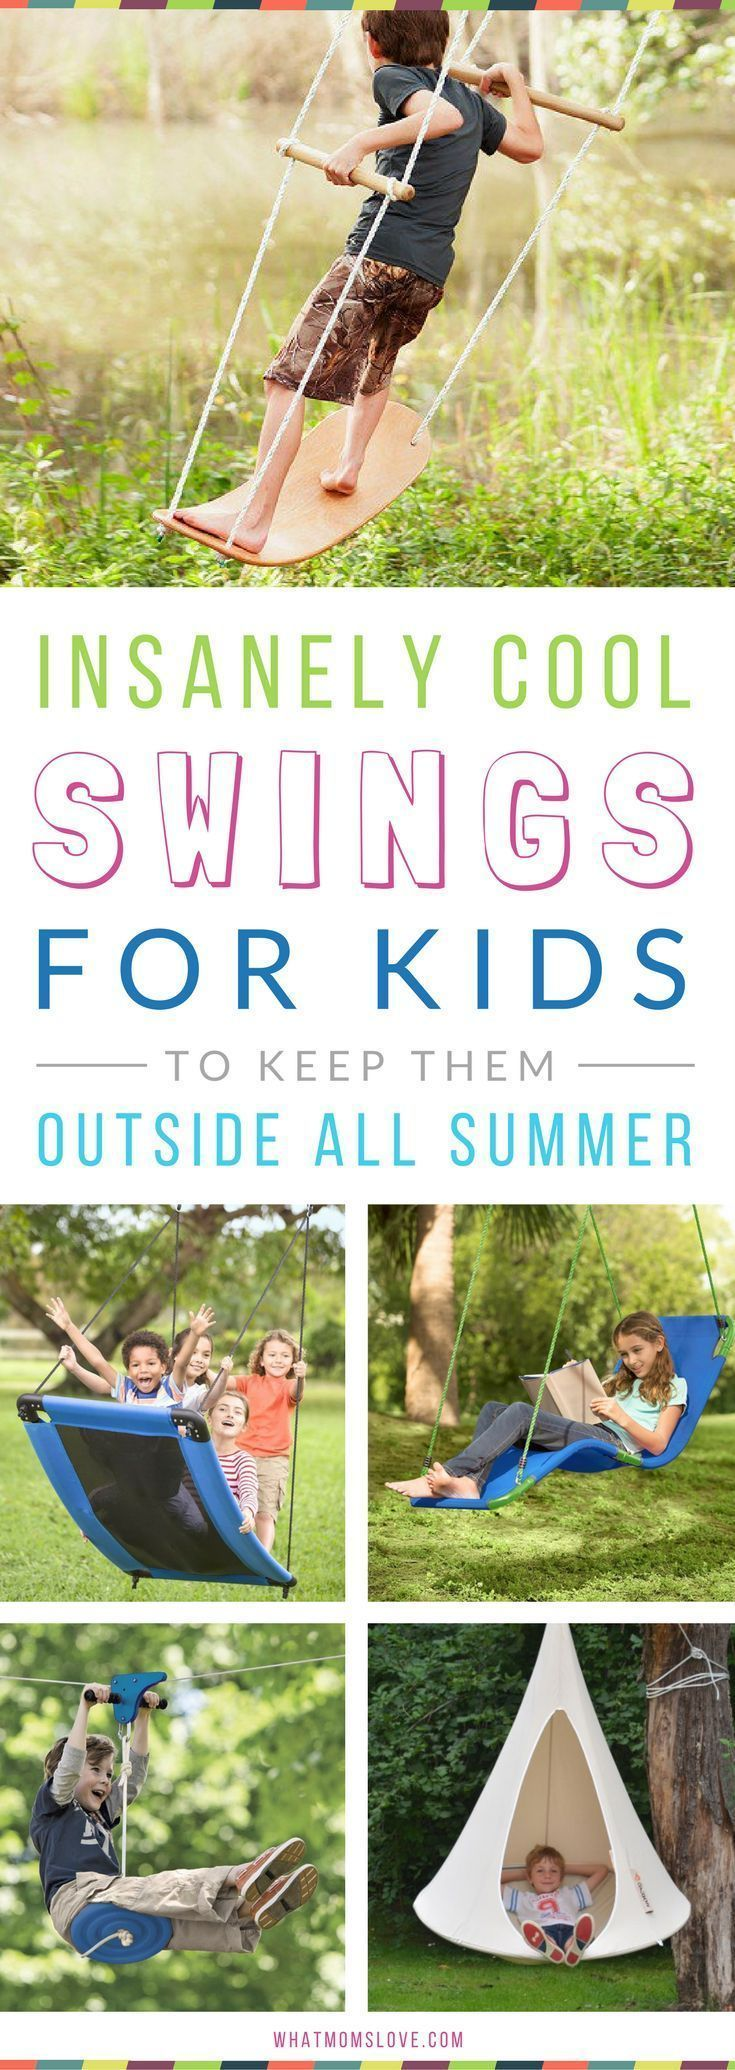 Awesome Backyard Ideas for Kids - Swings, Hangouts and Pods! Use them as fun Summer Activities and Boredom Busters for Outdoor Play. See them all at http://whatmomslove.com #kidsoutdoorplayhouse